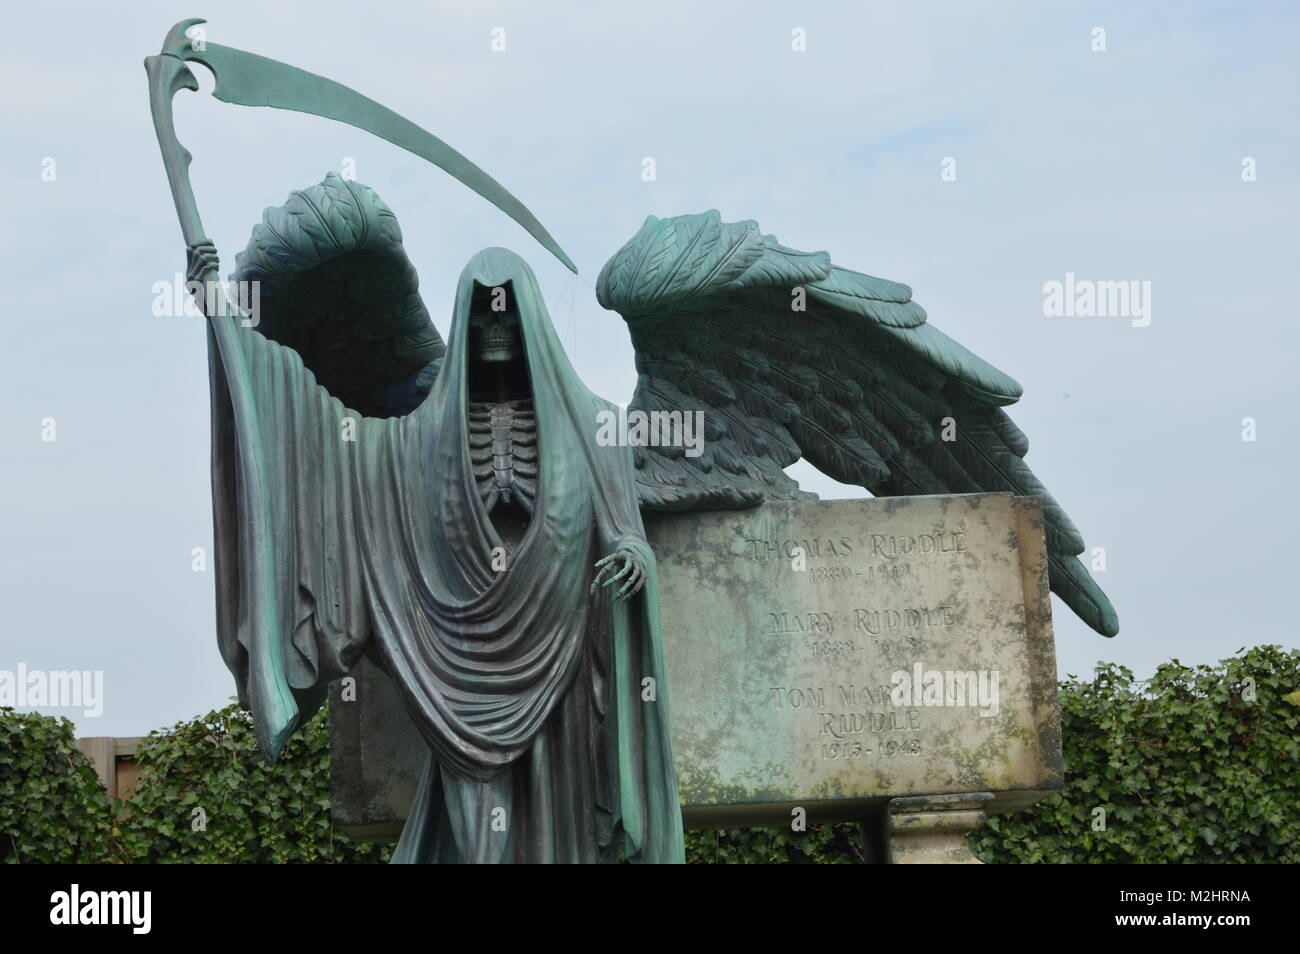 Tom Riddle's resting place - Stock Image